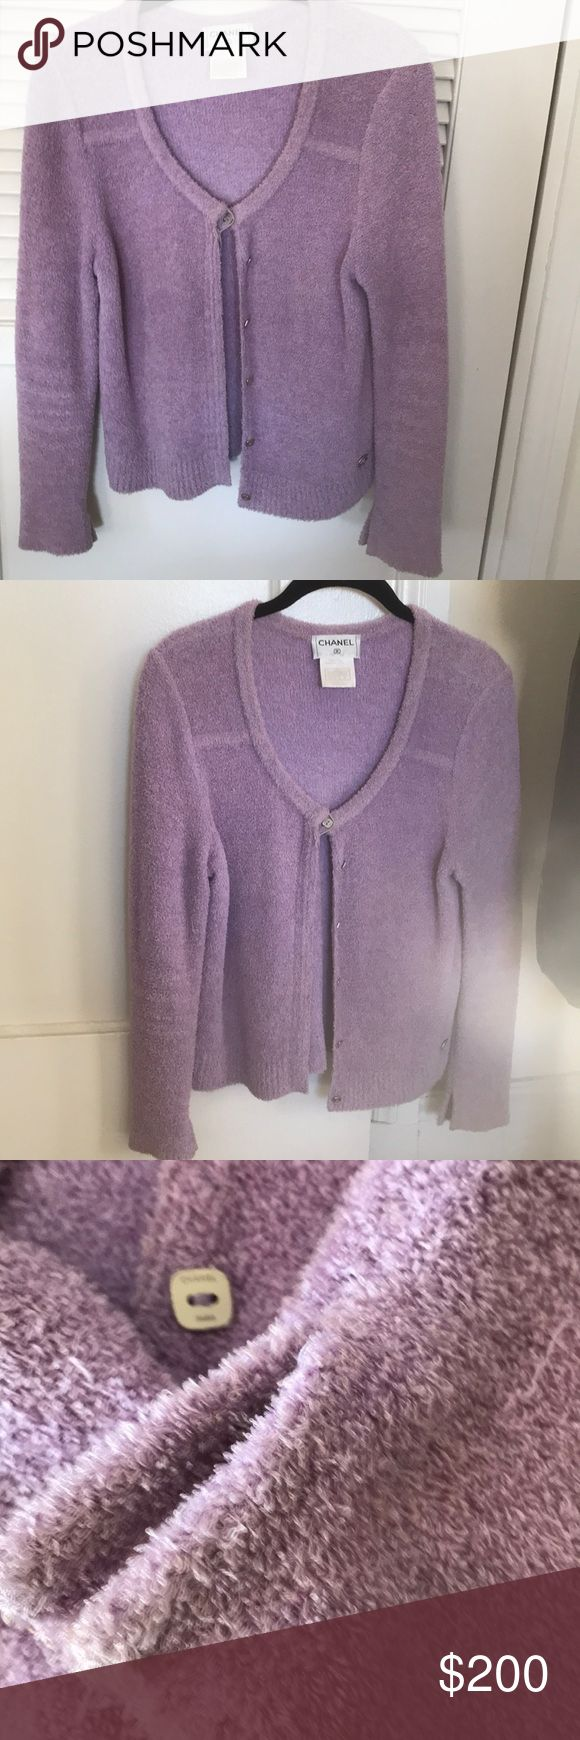 Chanel Sweater Lightweight cardigan in a lavender shade with small silver Chanel buttons.  Soft nubby cotton blend yarns.  Great vintage condition. CHANEL Sweaters Cardigans